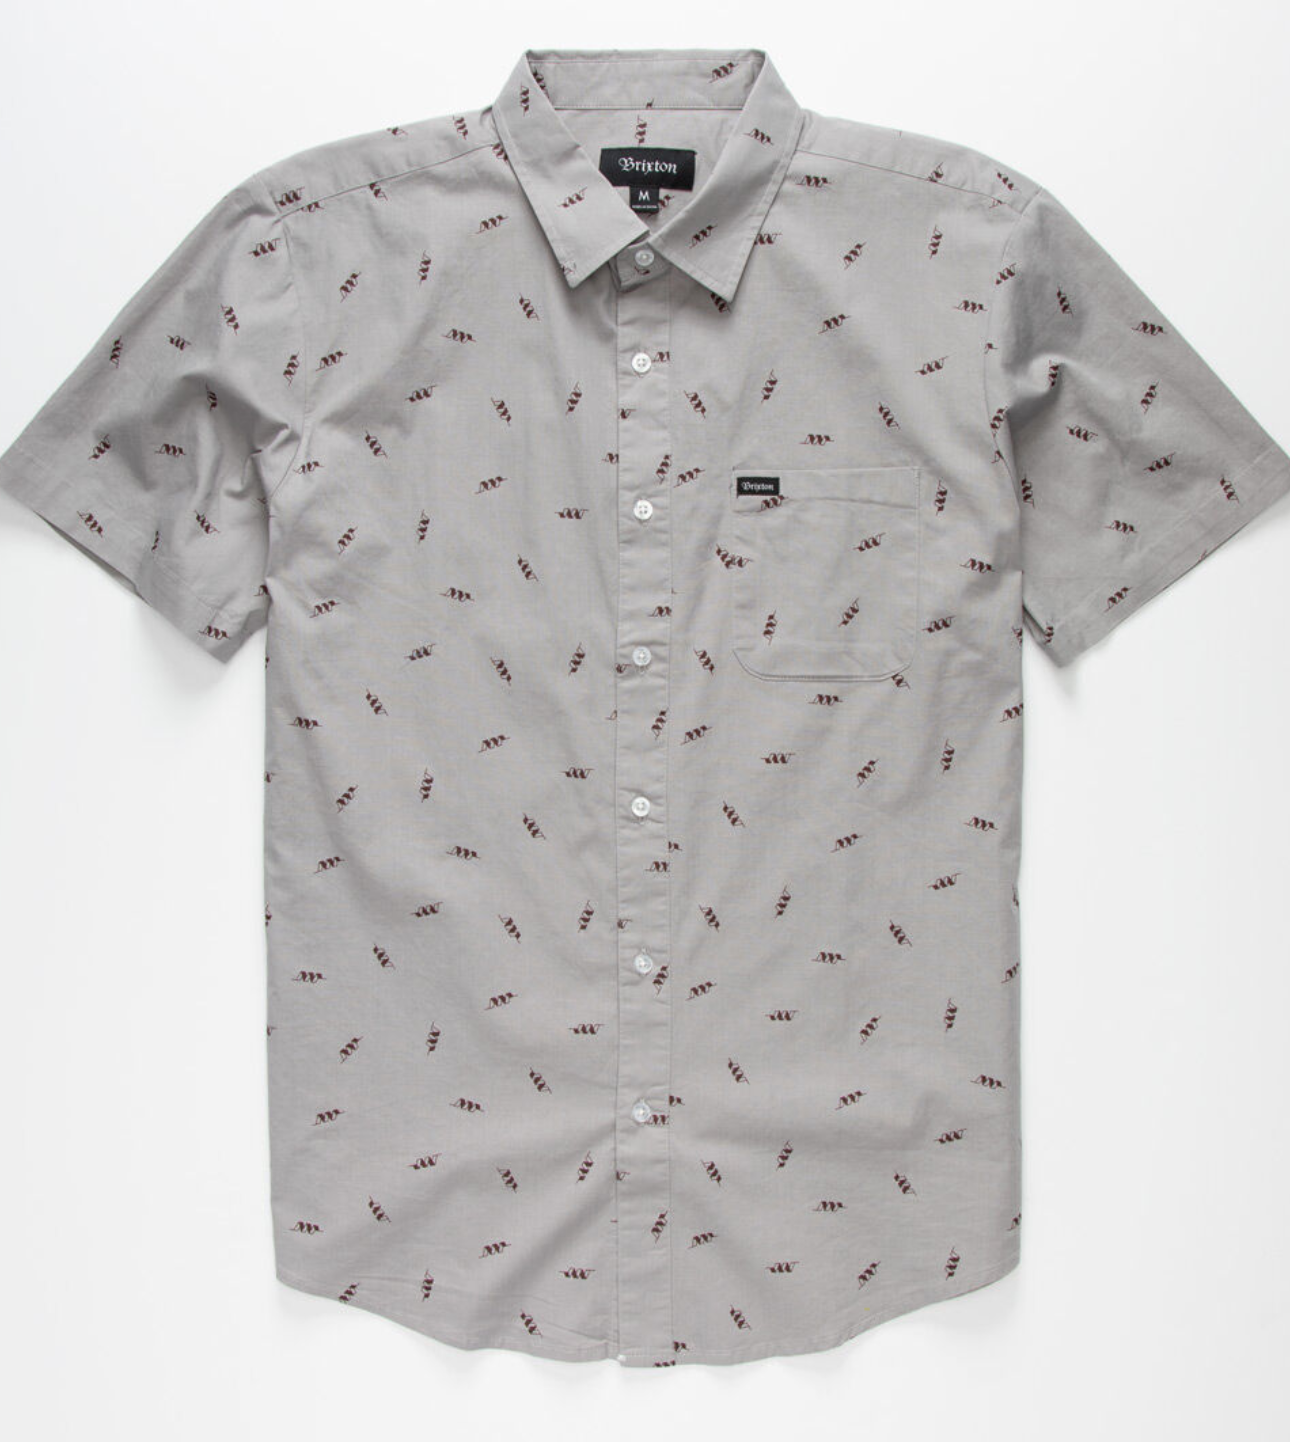 BRIXTON CHARTER PRINT S/S WOVEN